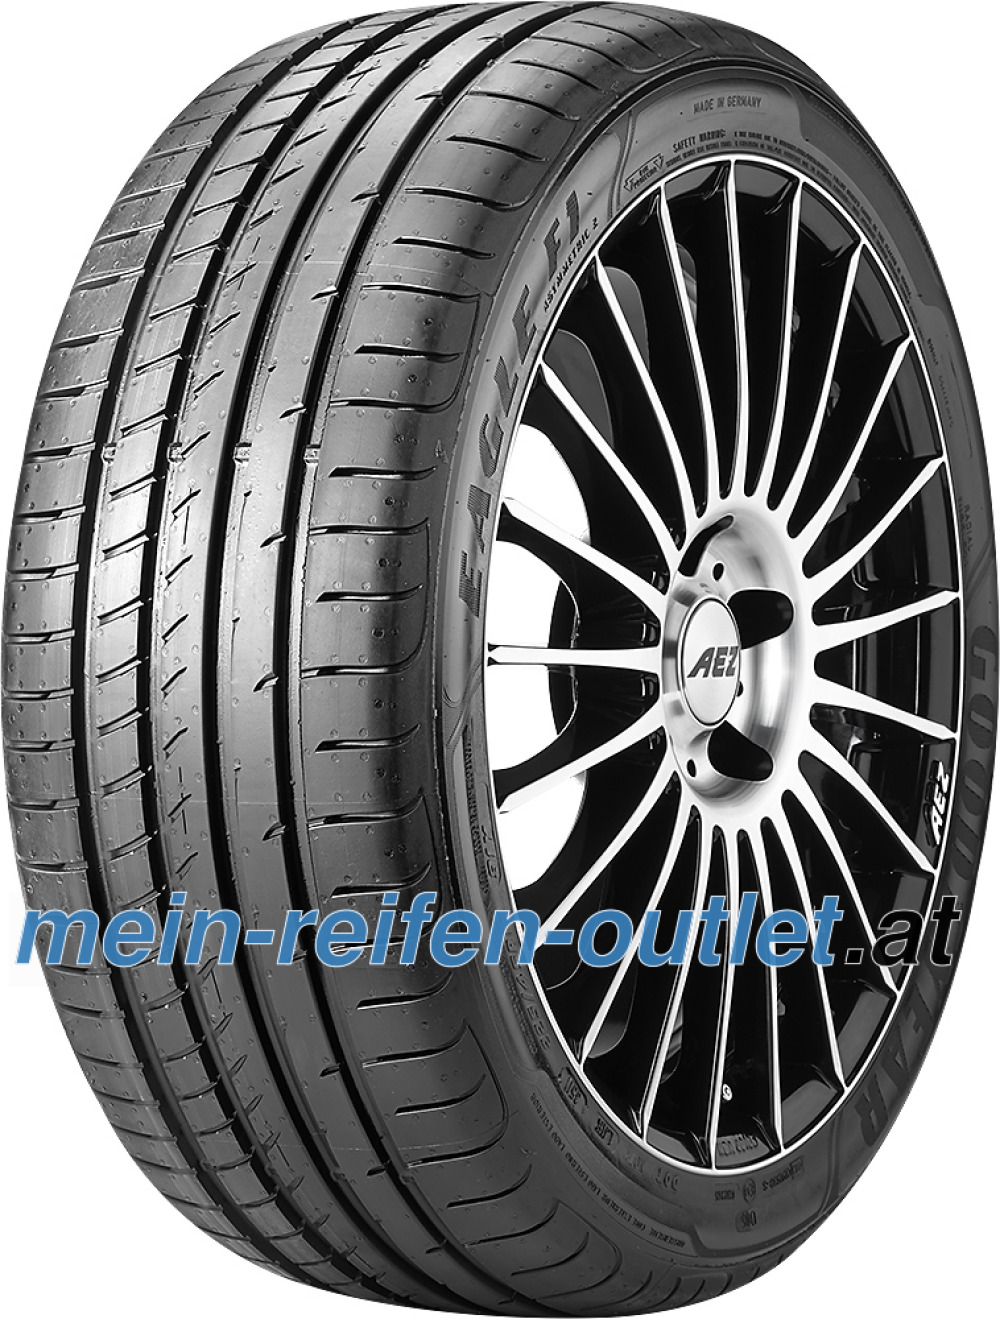 Goodyear Eagle F1 Asymmetric 2 ( 285/35 R19 99Y )